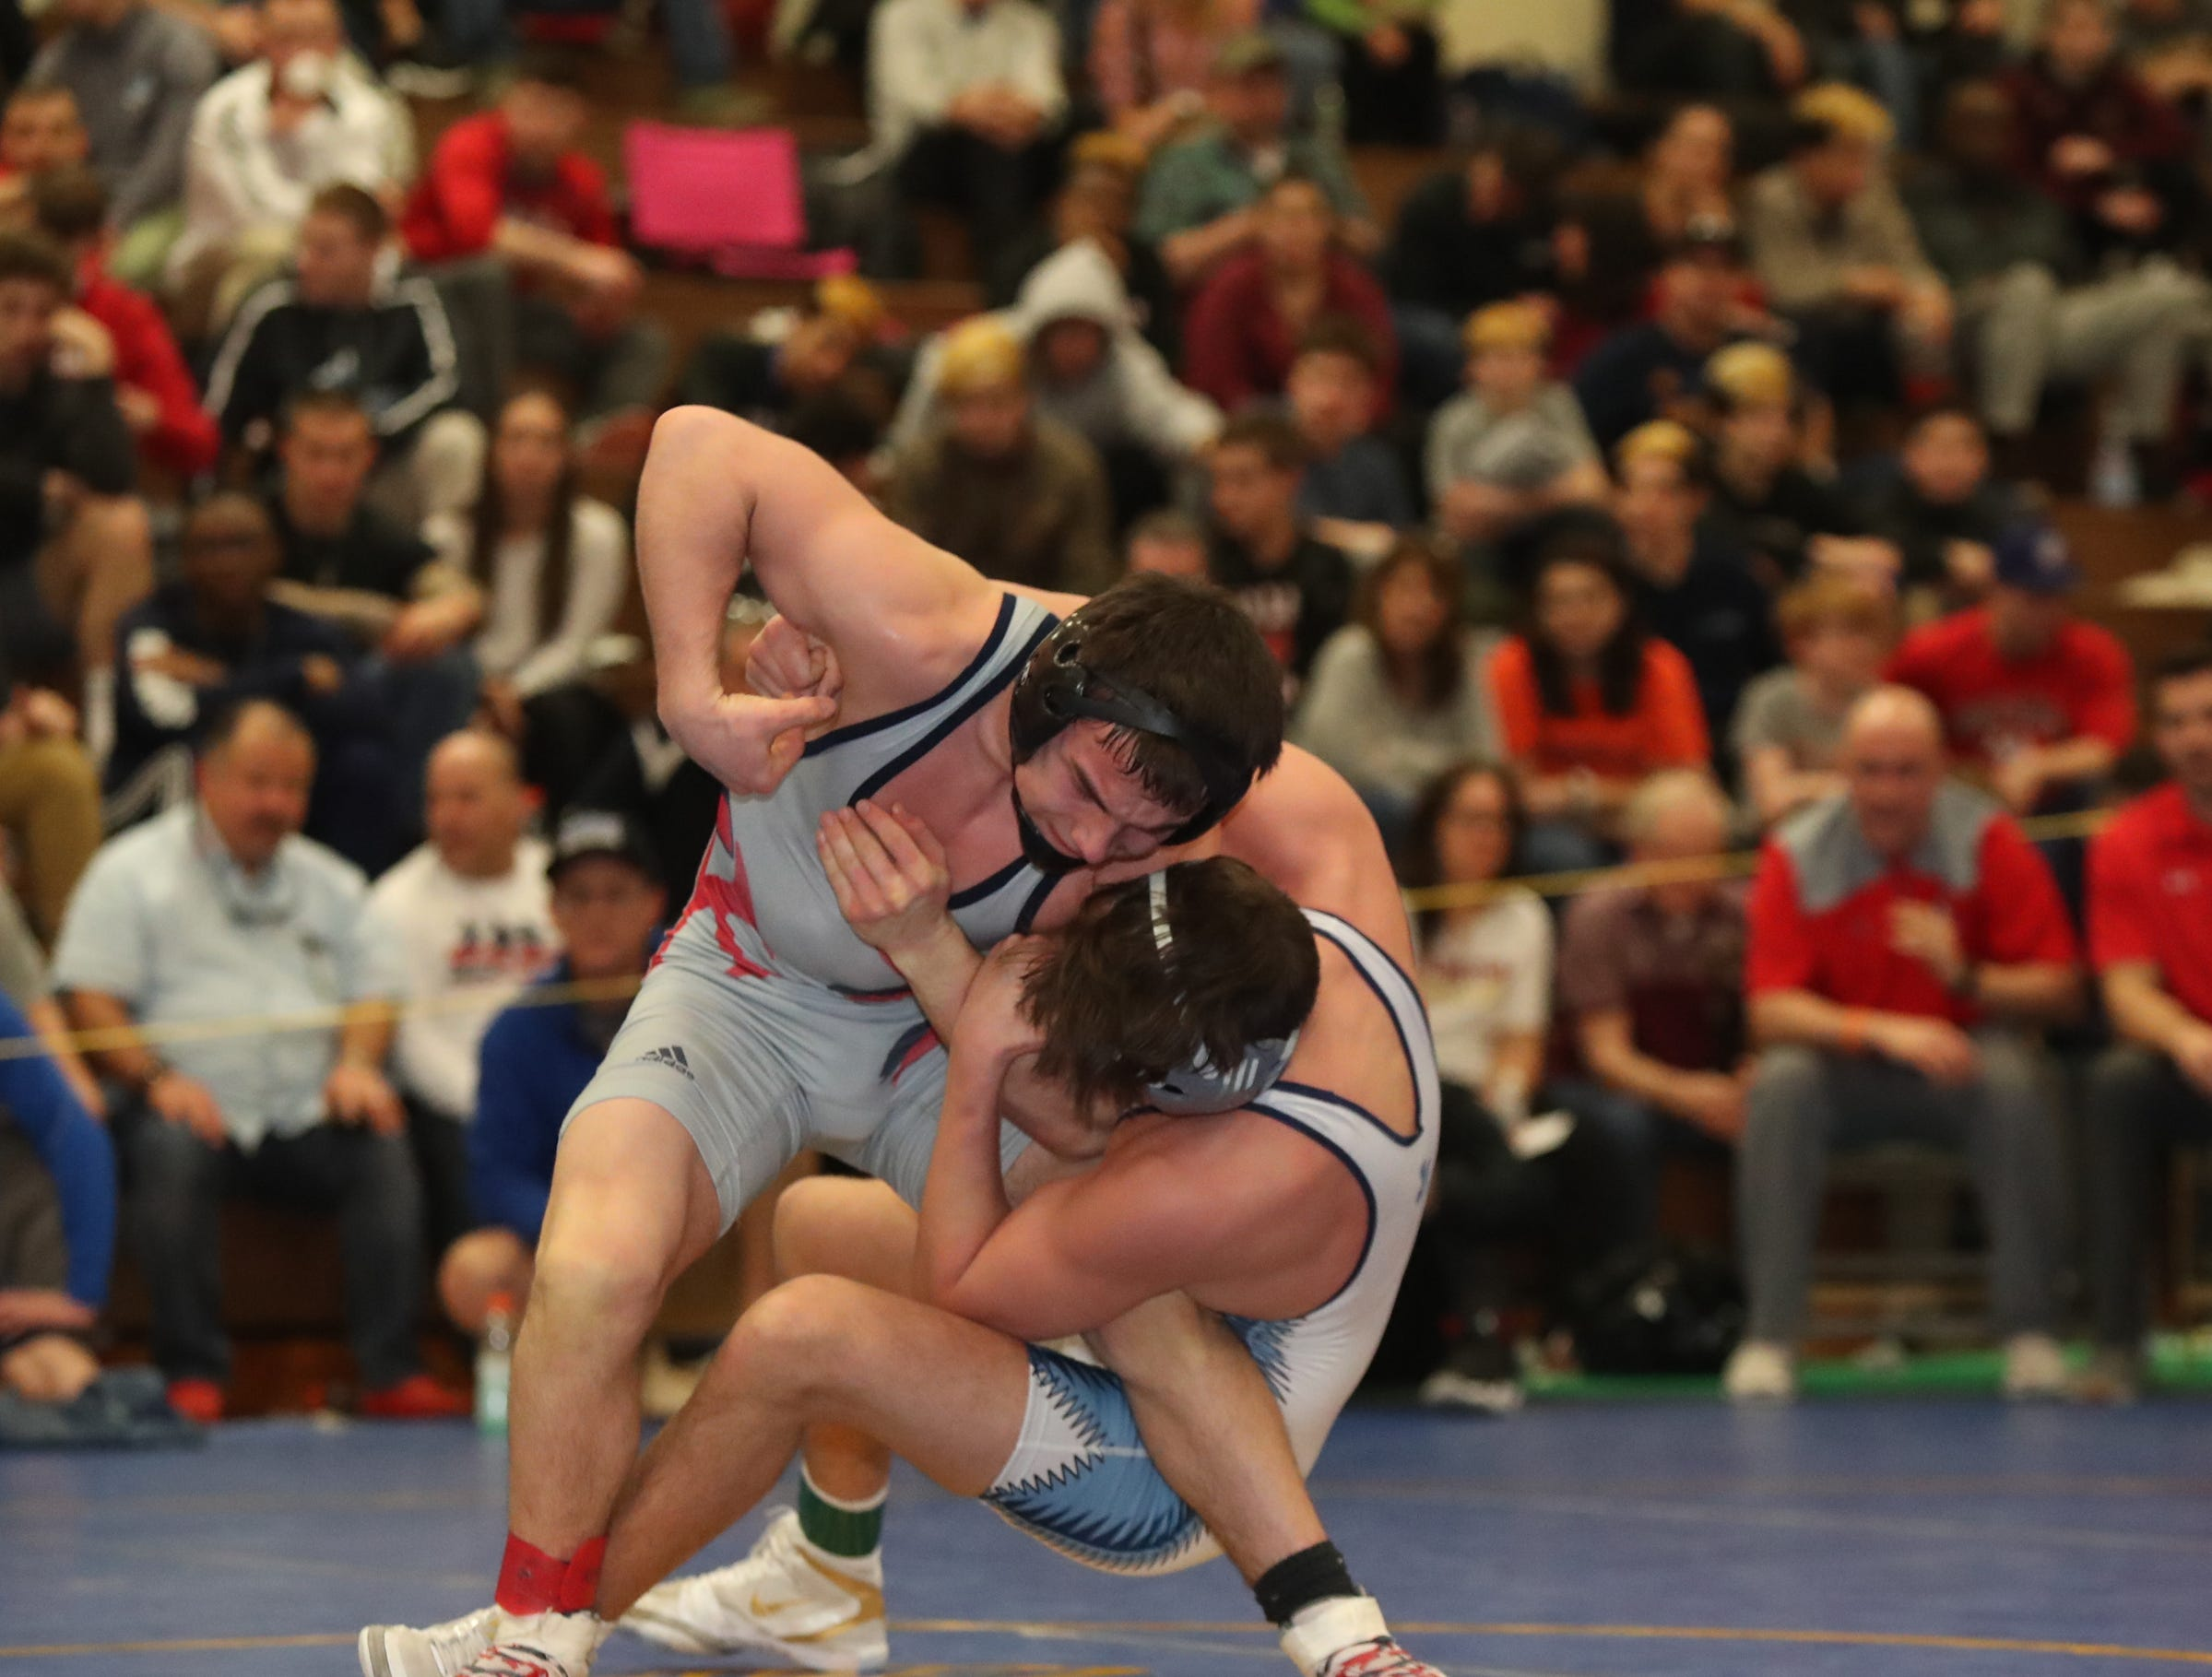 RC Ketcham's Brendan Carroll defeats John Jay-East Fishkill's Tyler Albis in the 138-pound match of the division I wrestling finals at Clarkstown South High School on Sunday, February 10, 2019.